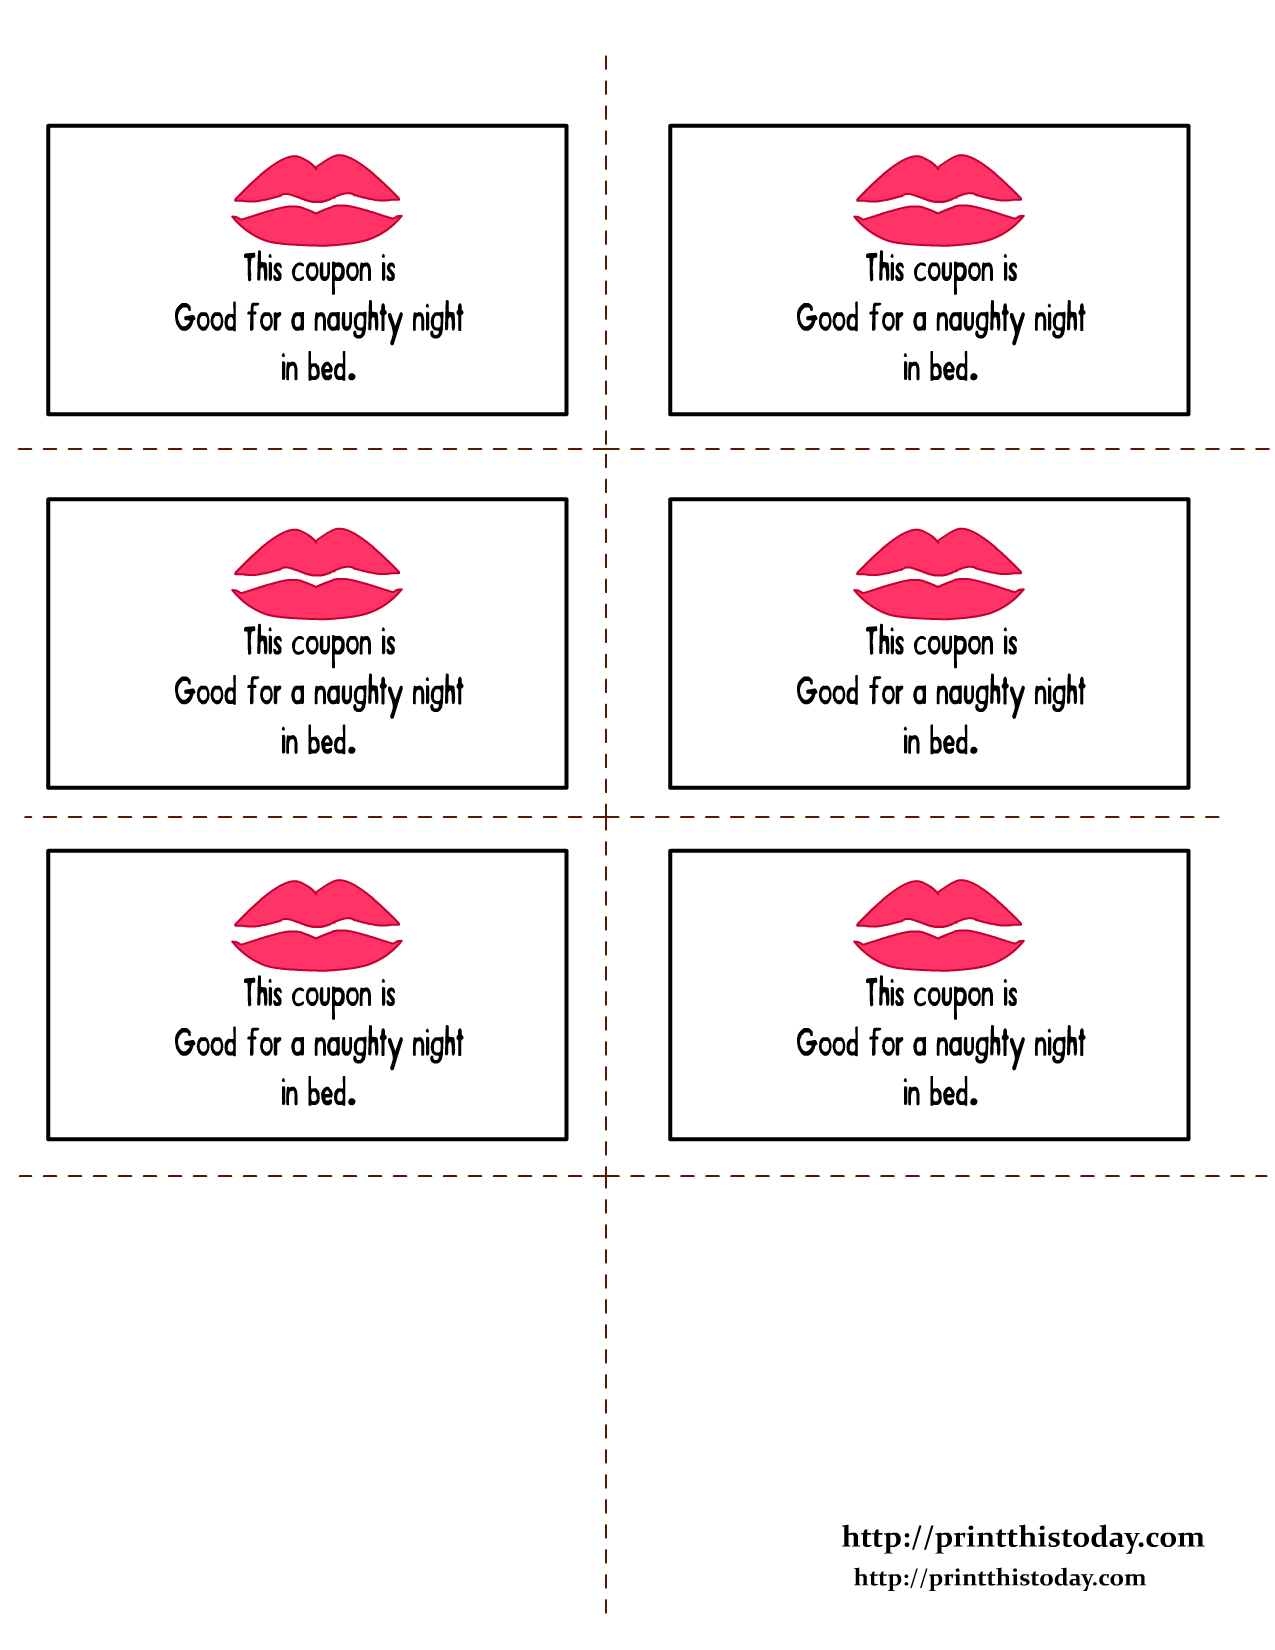 Romantic Love Coupon Printable | Romantic Love Coupons | Print This - Free Printable Kinky Coupons For Him